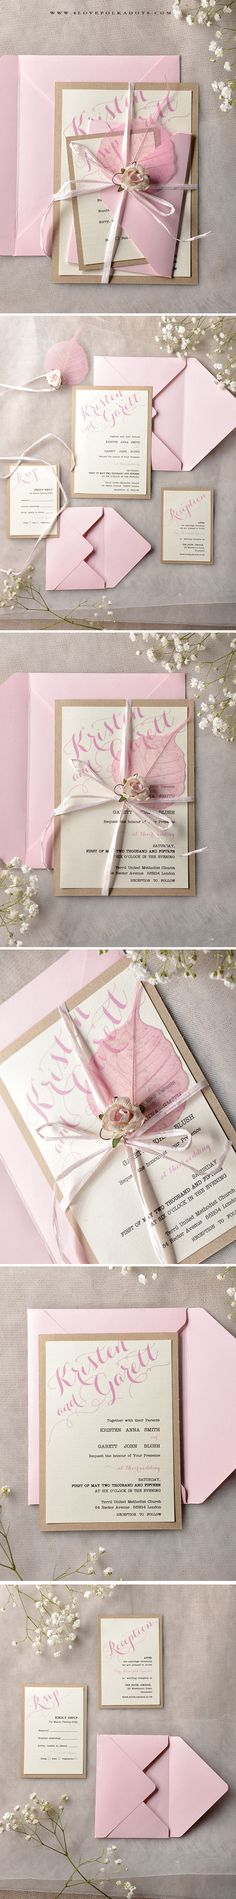 Handmade Wedding Invitations with flower & leaf #summerwedding #weddingideas